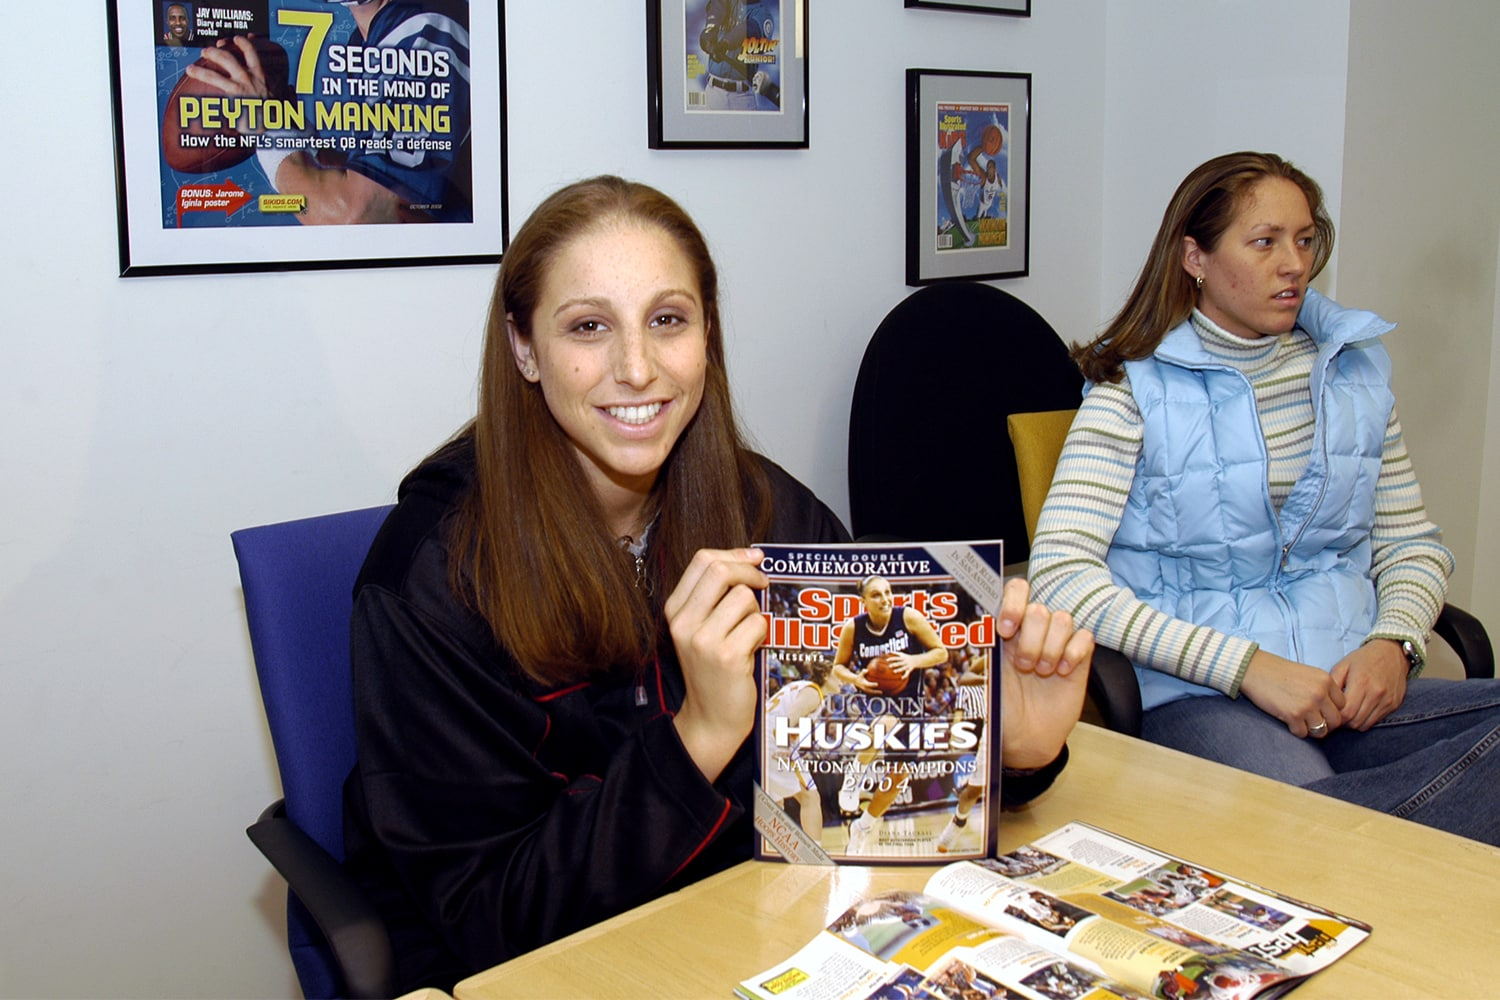 Diana Taurasi in New York